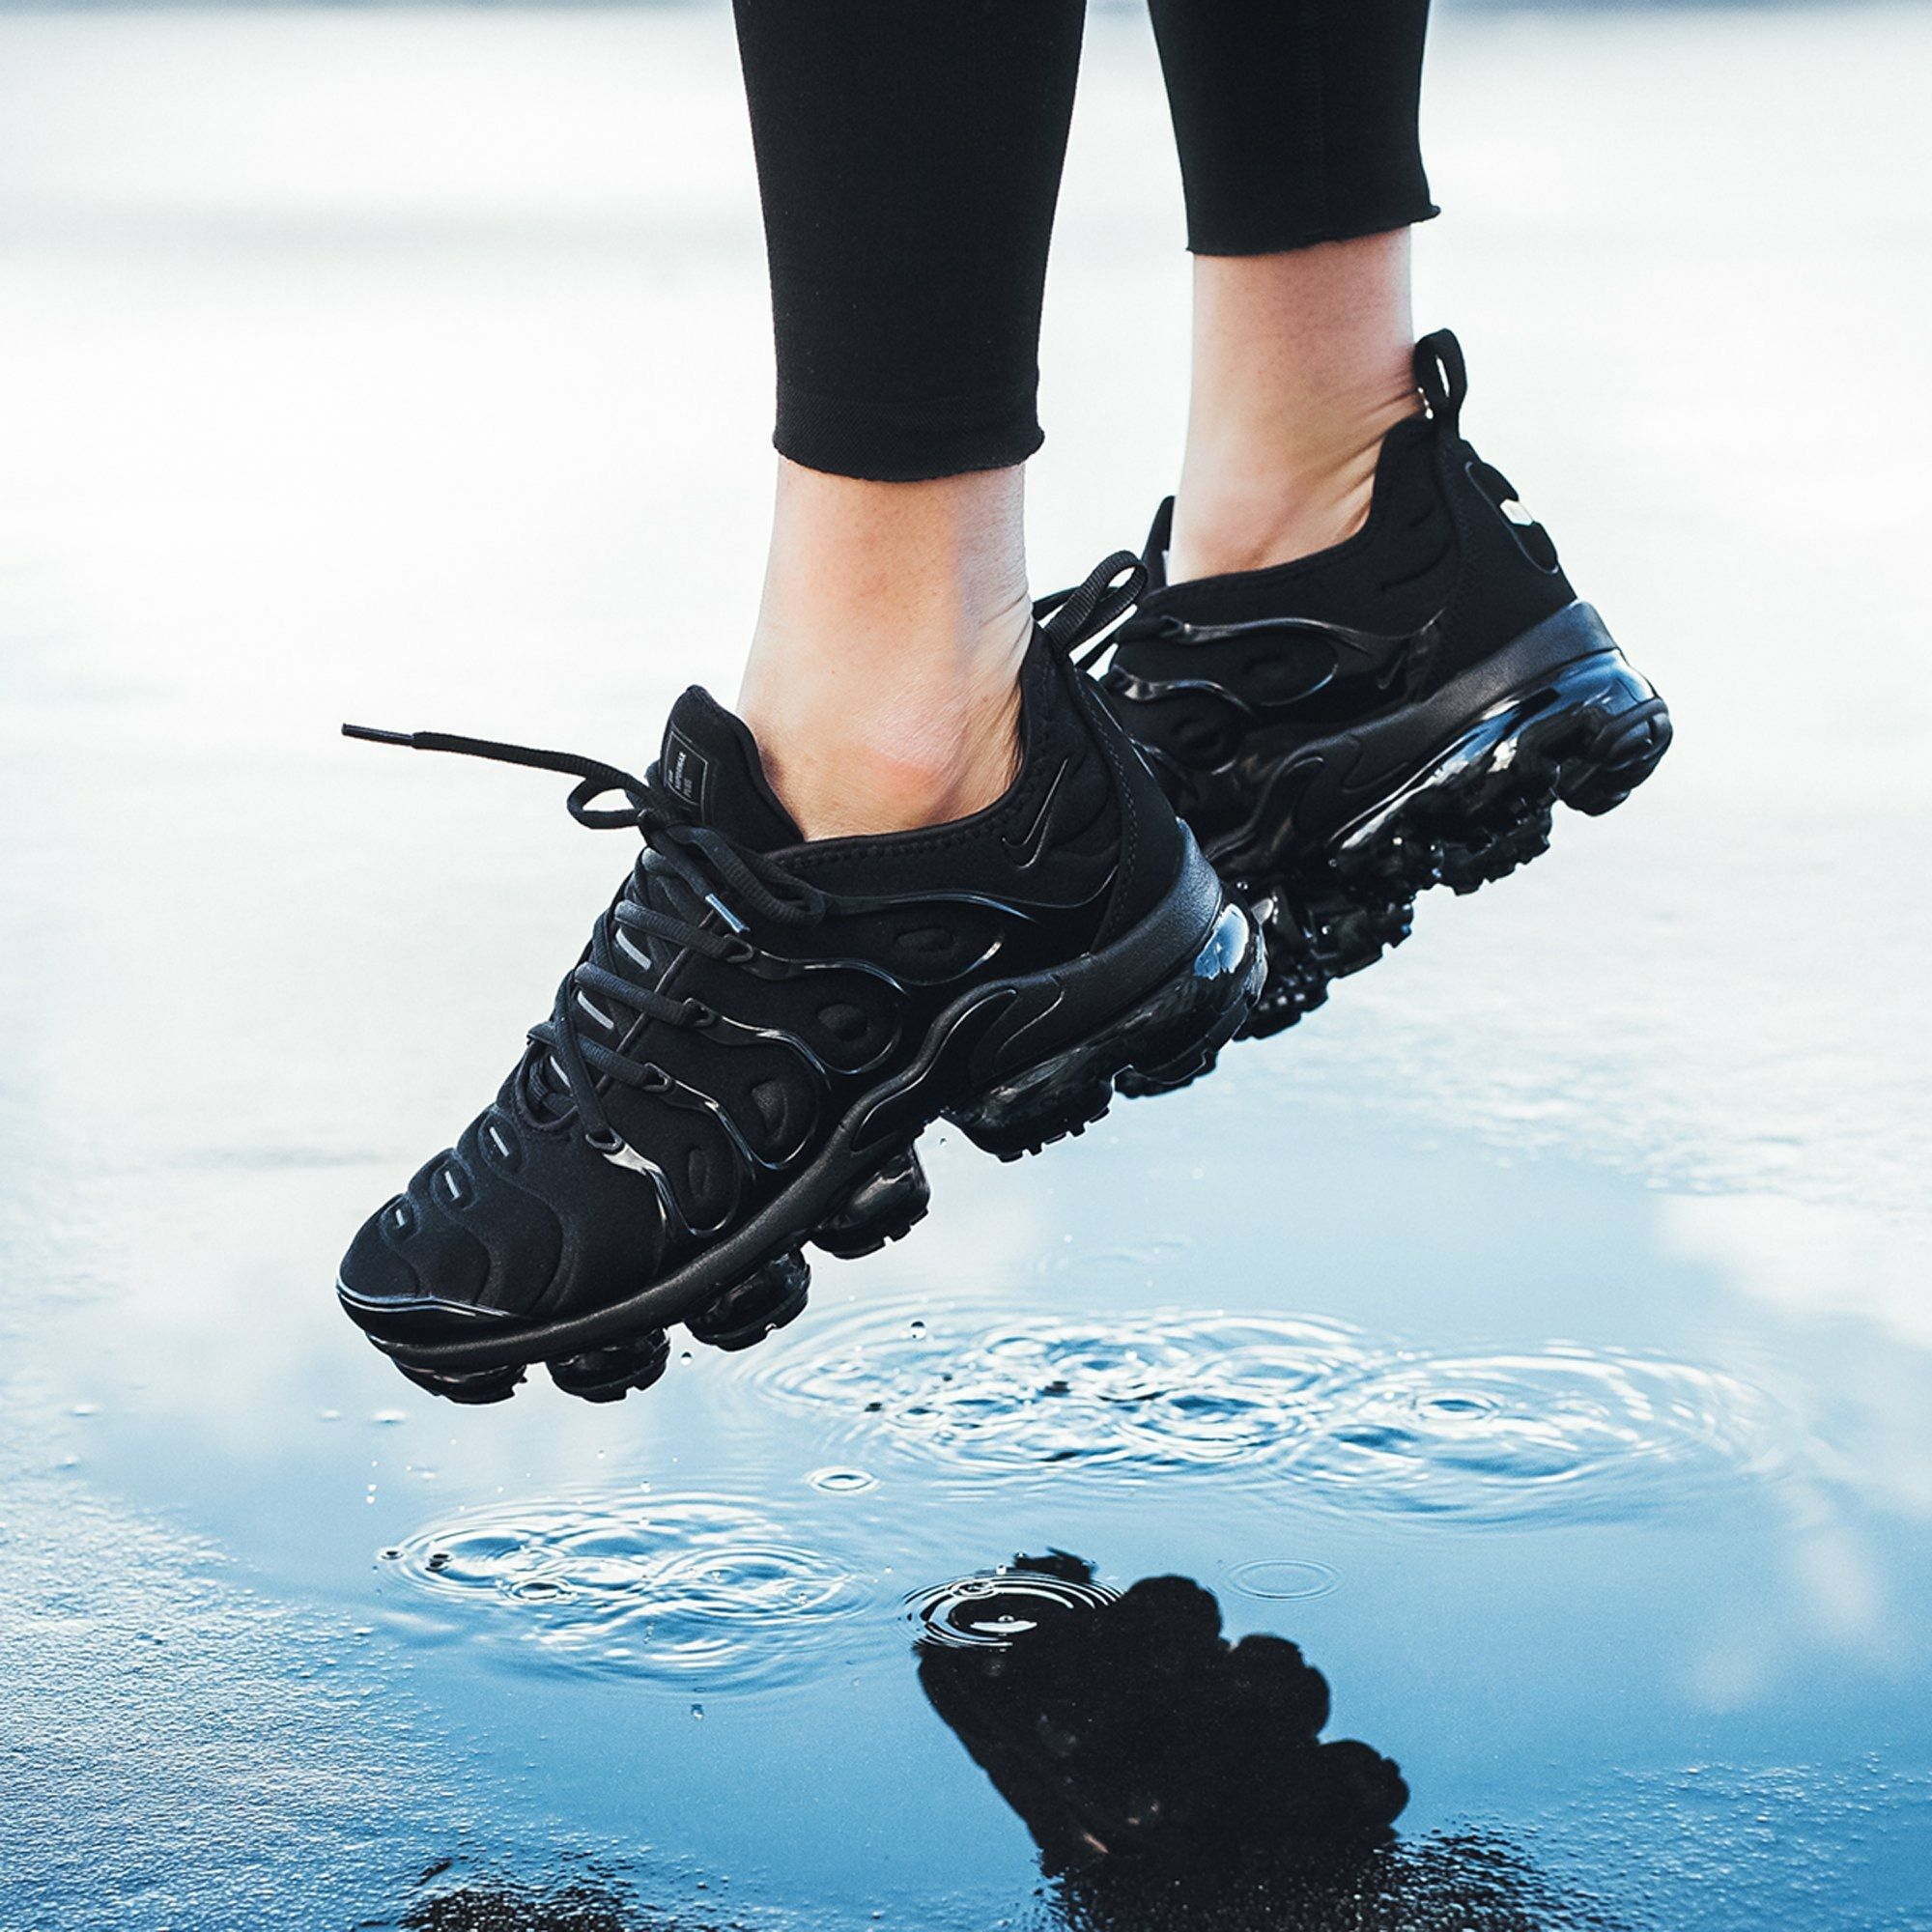 Nike Air Vapormax Plus (With images) | Sneakers men fashion ...